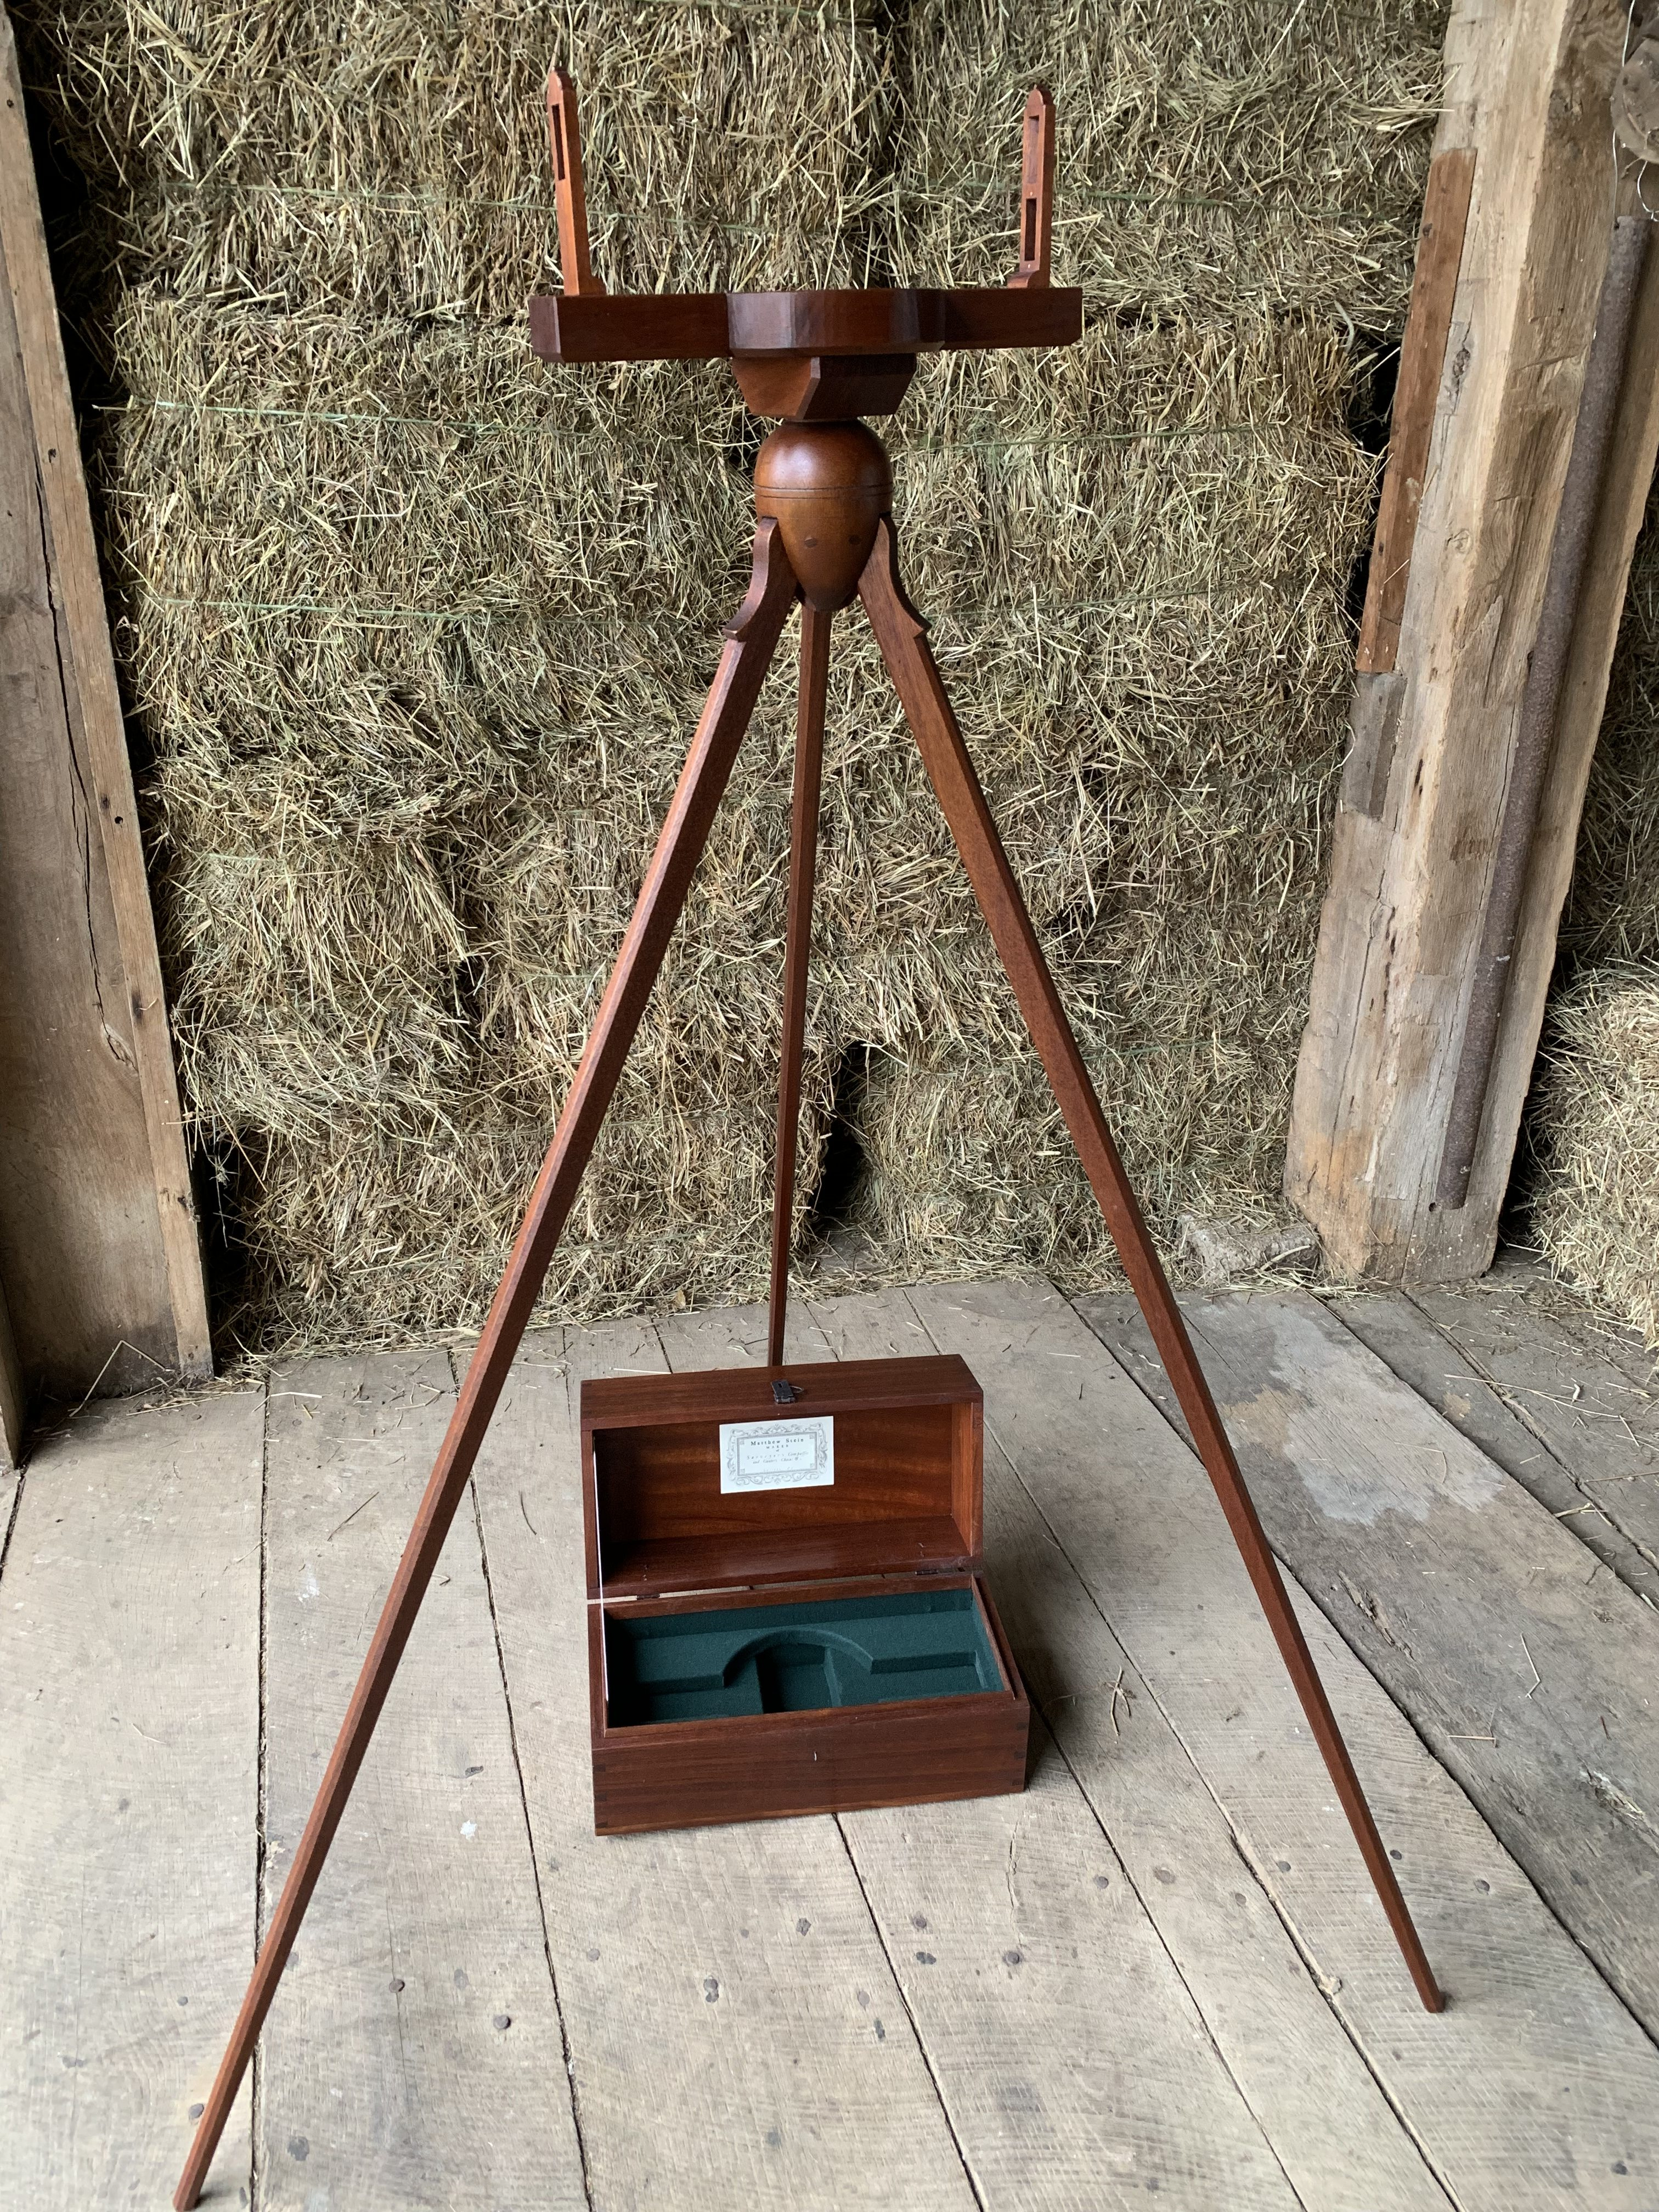 Mahogany Surveyors Compass